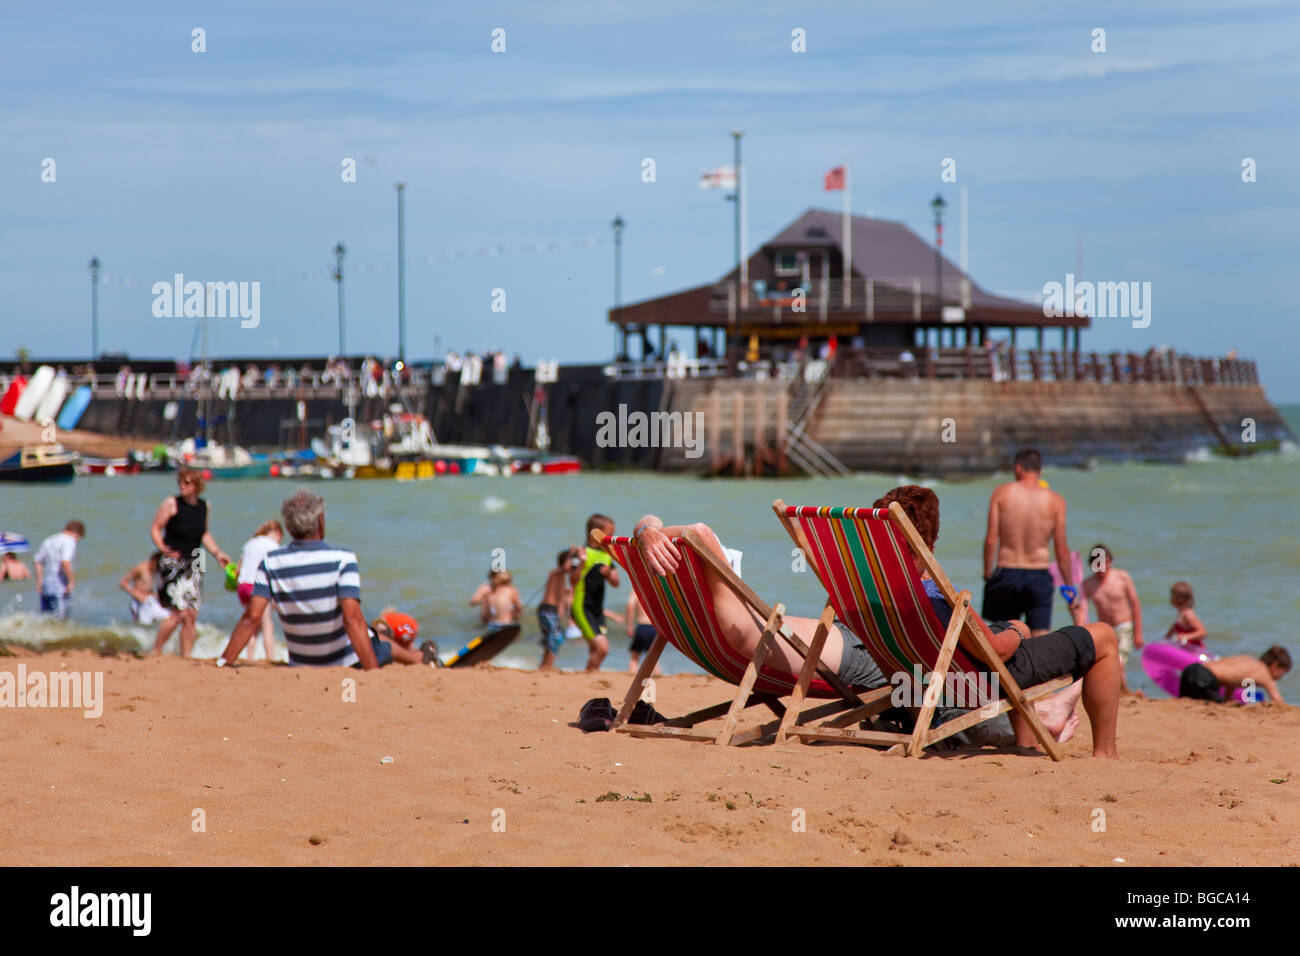 A couple relaxing on deck chairs at Broadstairs Beach, Kent, England on a lovely sunny Summer day. - Stock Image